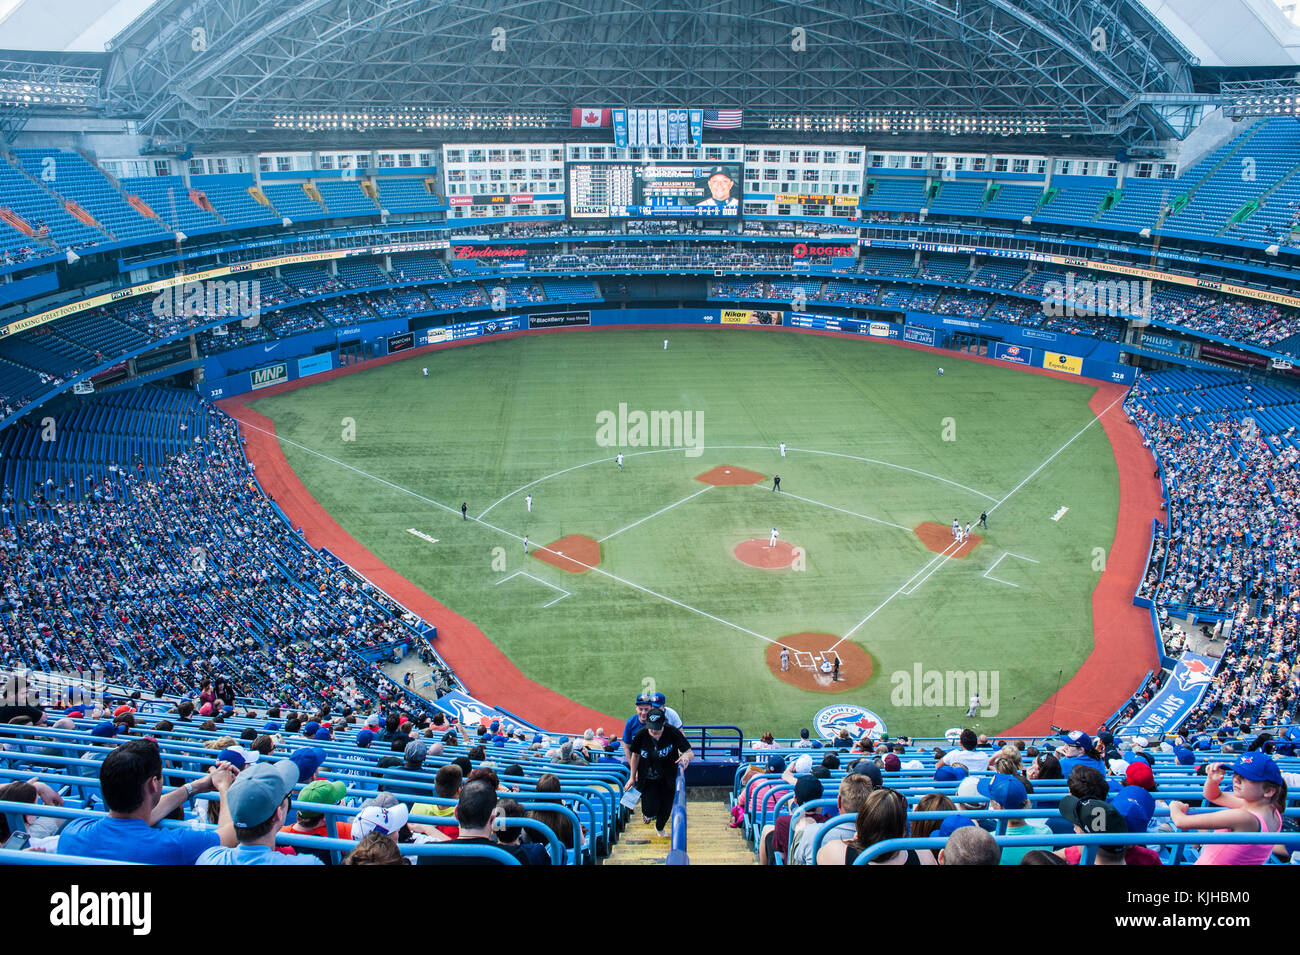 Rogers Centre (originally known as SkyDome) is a multi-purpose stadium in downtown Toronto, Ontario, Canada situated - Stock Image